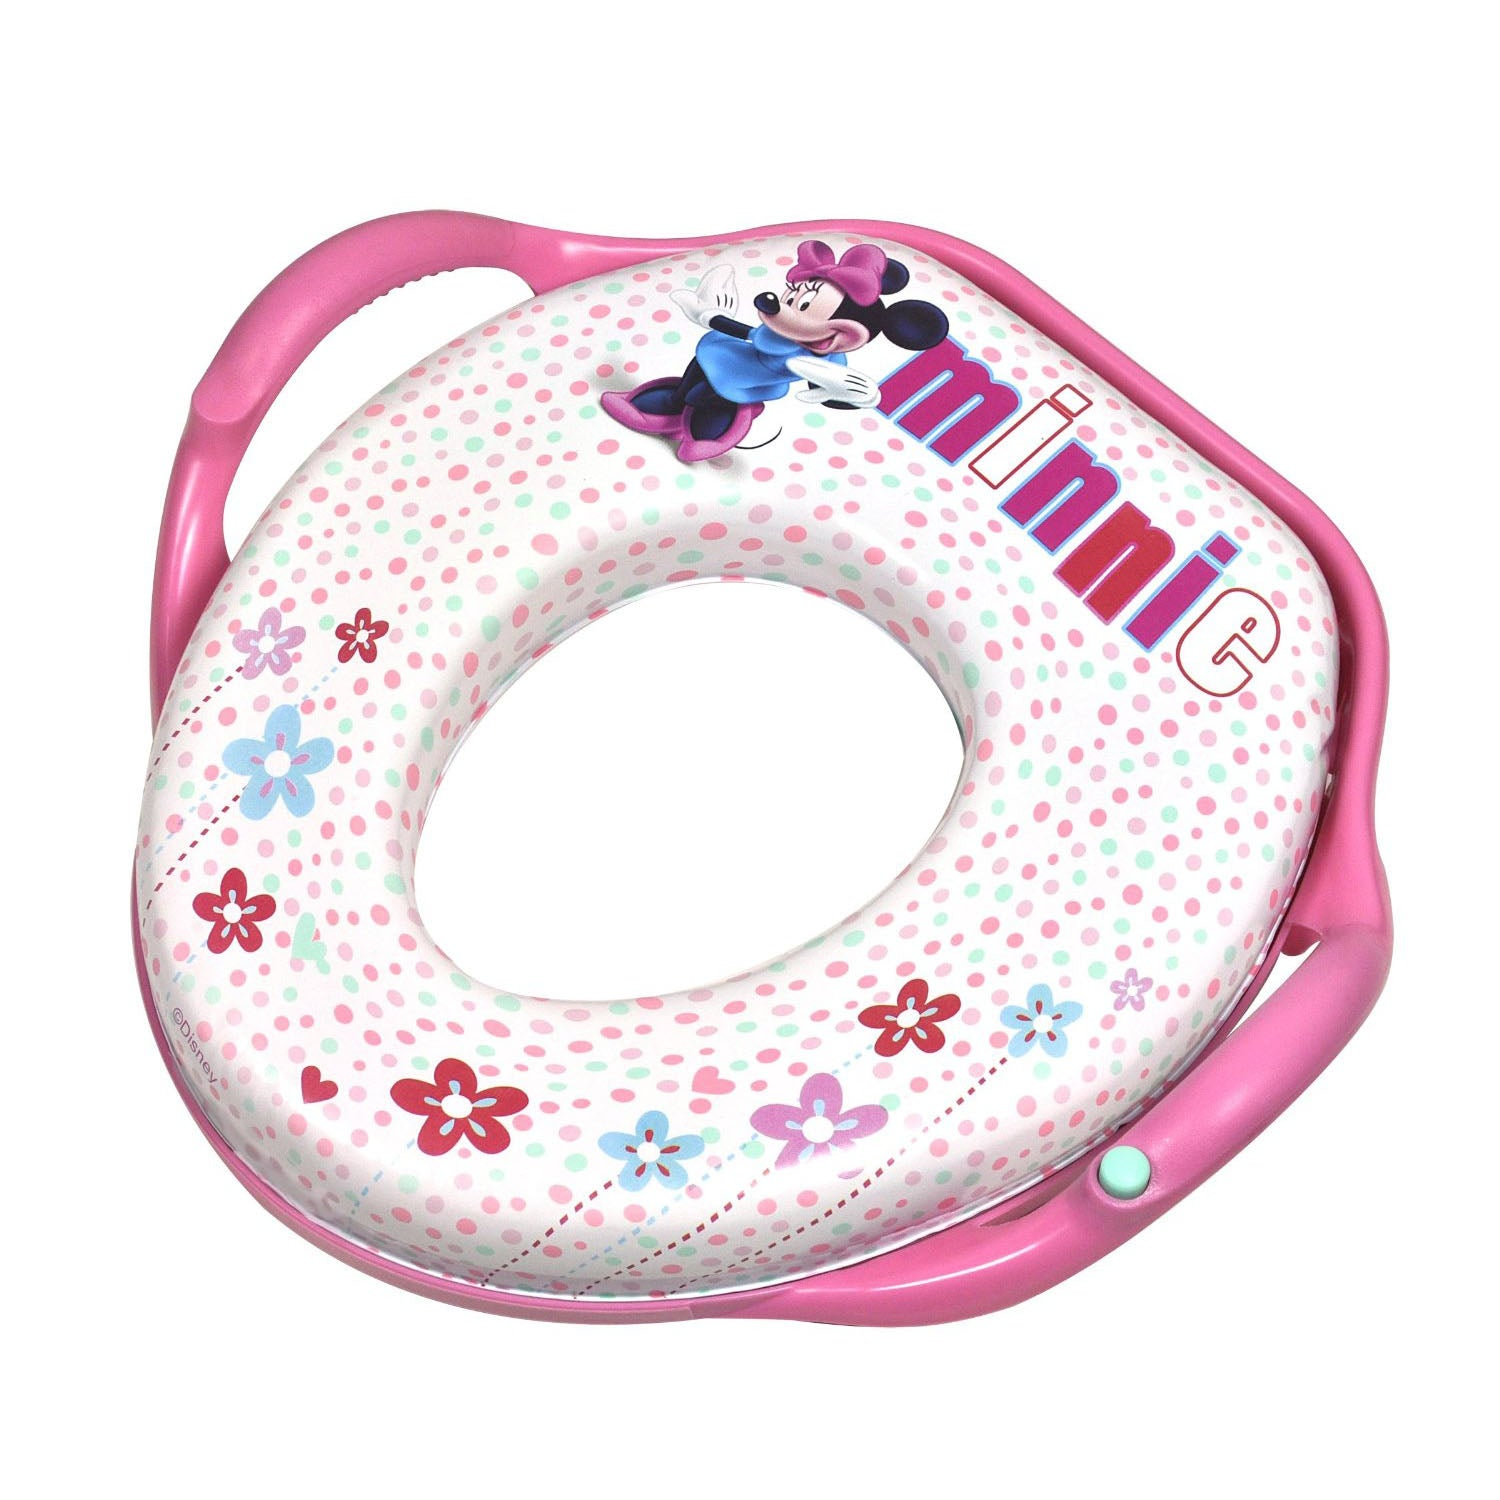 Minnie Mouse - Potty Training Seat with Music